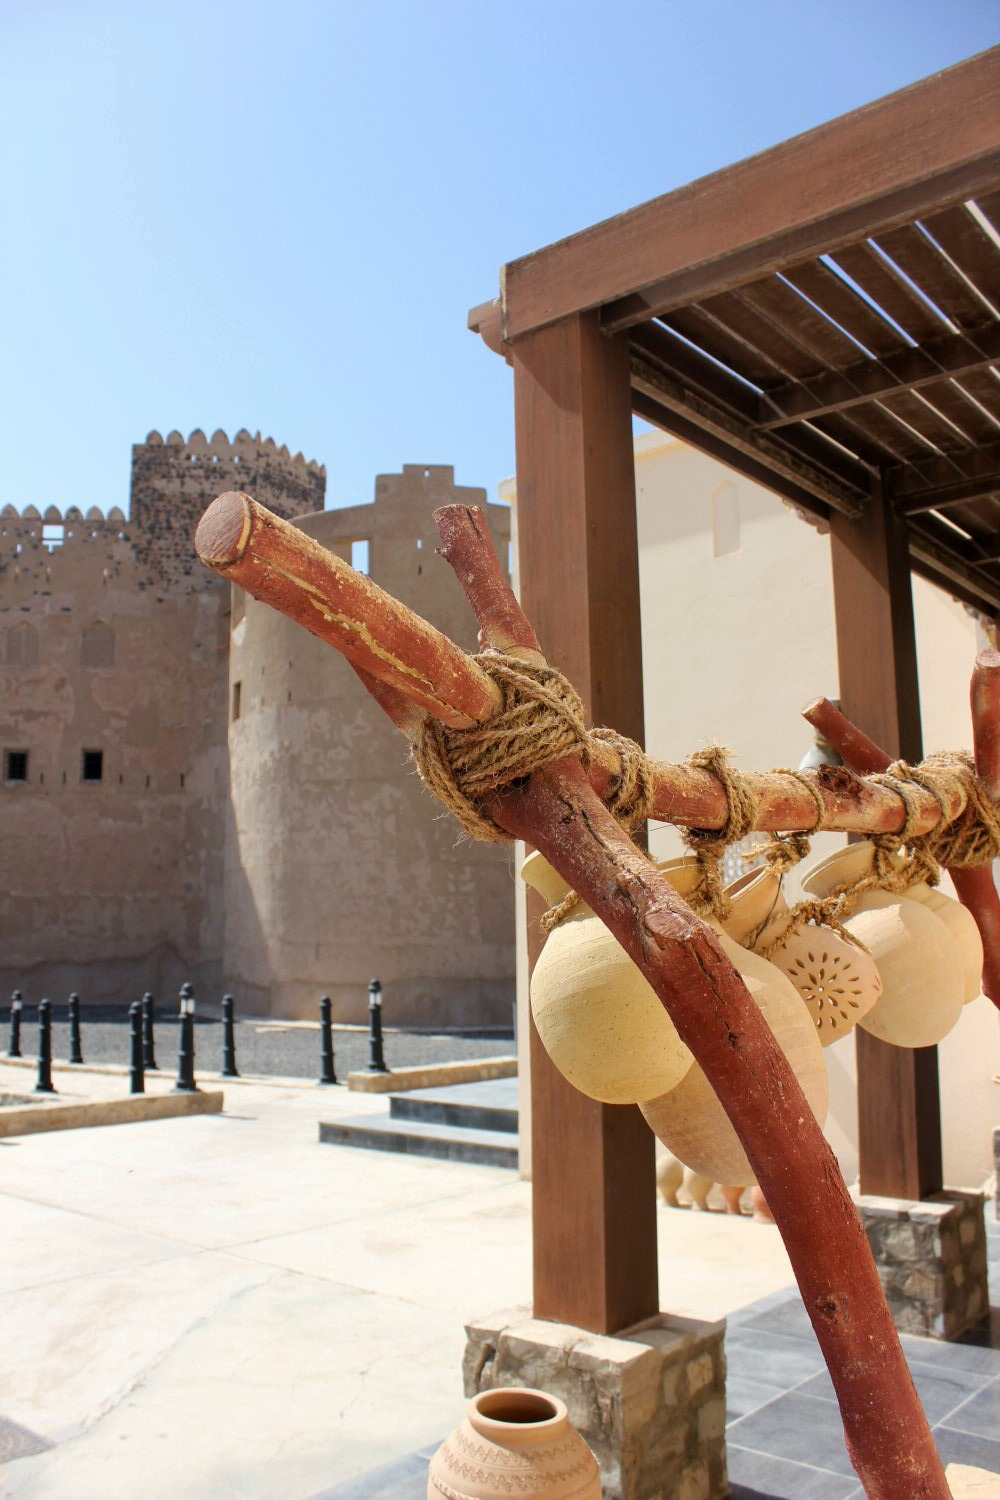 Clay water pots hang outside Jabrin Castle in Oman with the fort behind - my nine reasons to visit Oman with kids